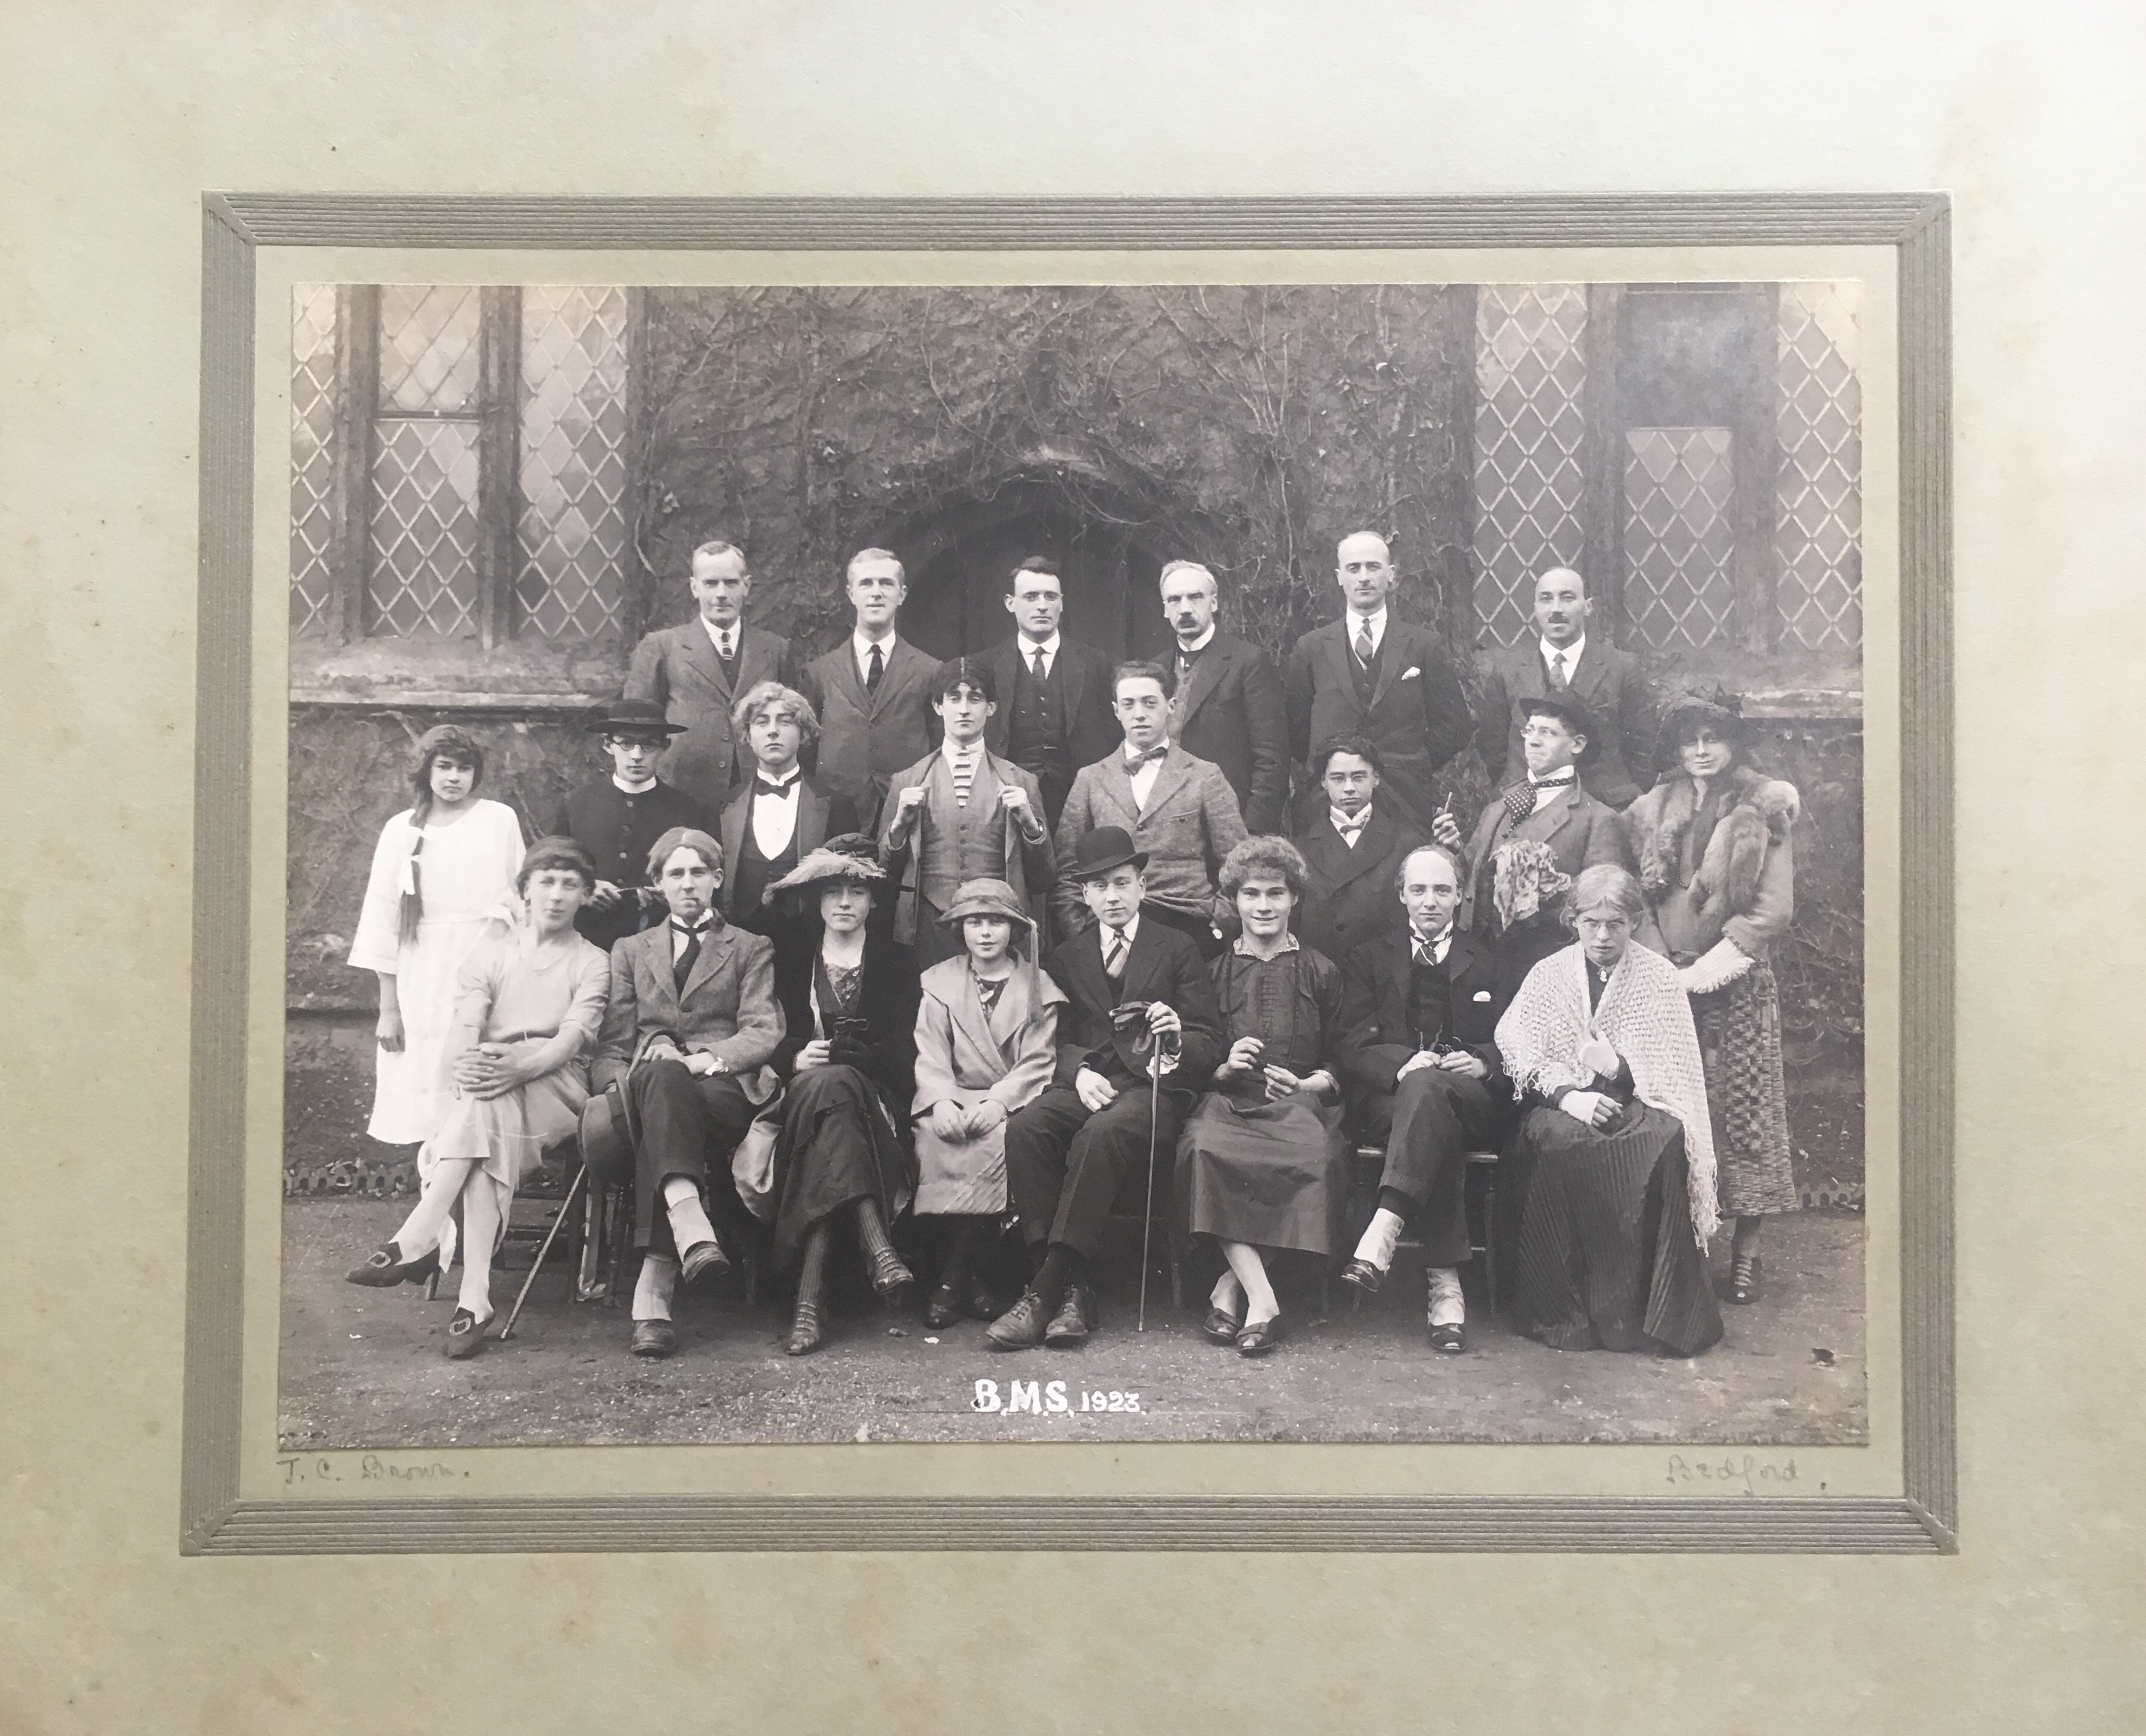 1923 BMS Dramatic Society incl Christopher Fry (2nd left, middle)-BMS-P1883